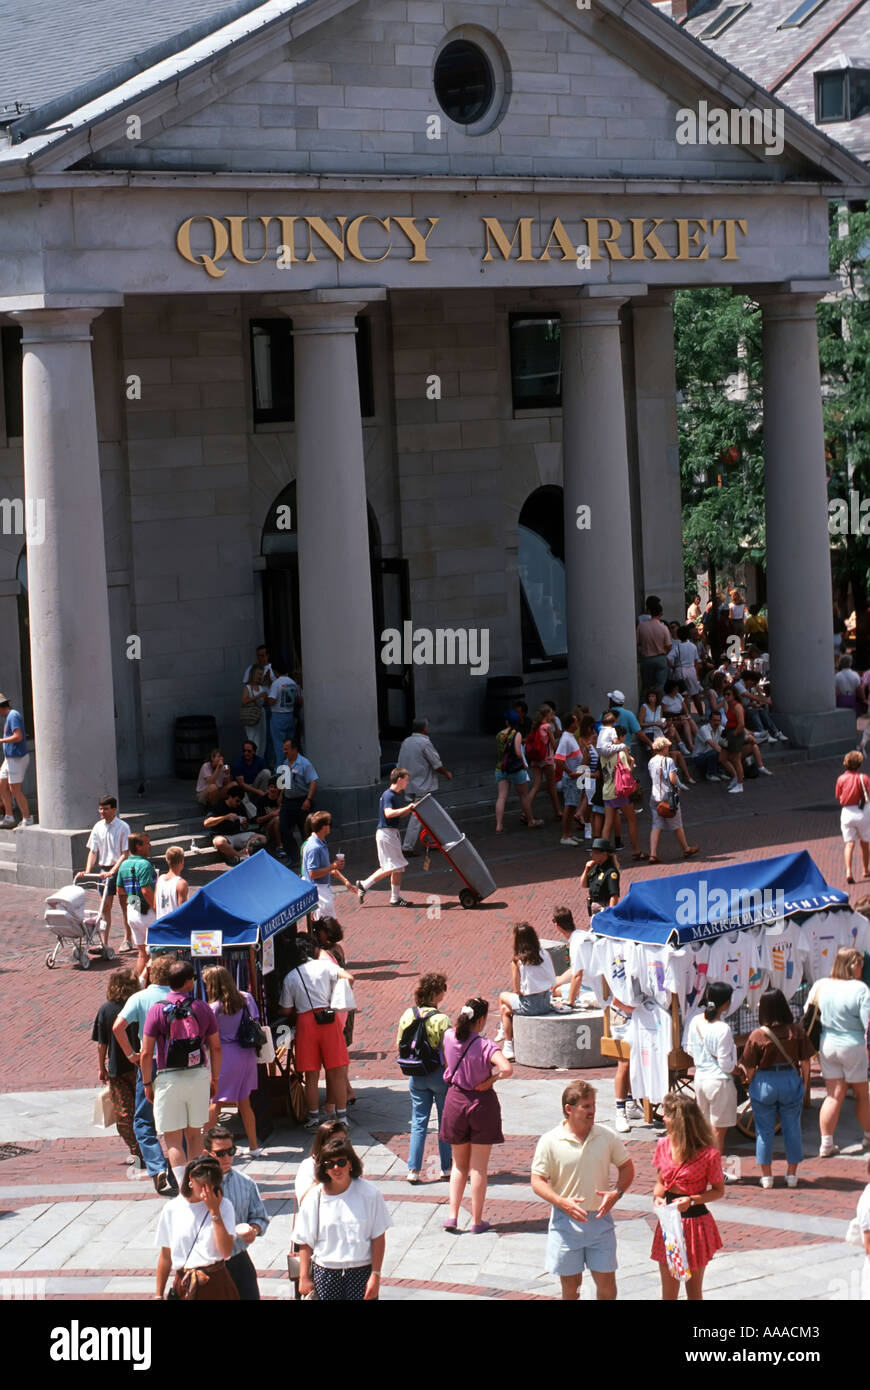 Quincy Market quartier commerçant de Boston Massachusetts MA Photo Stock